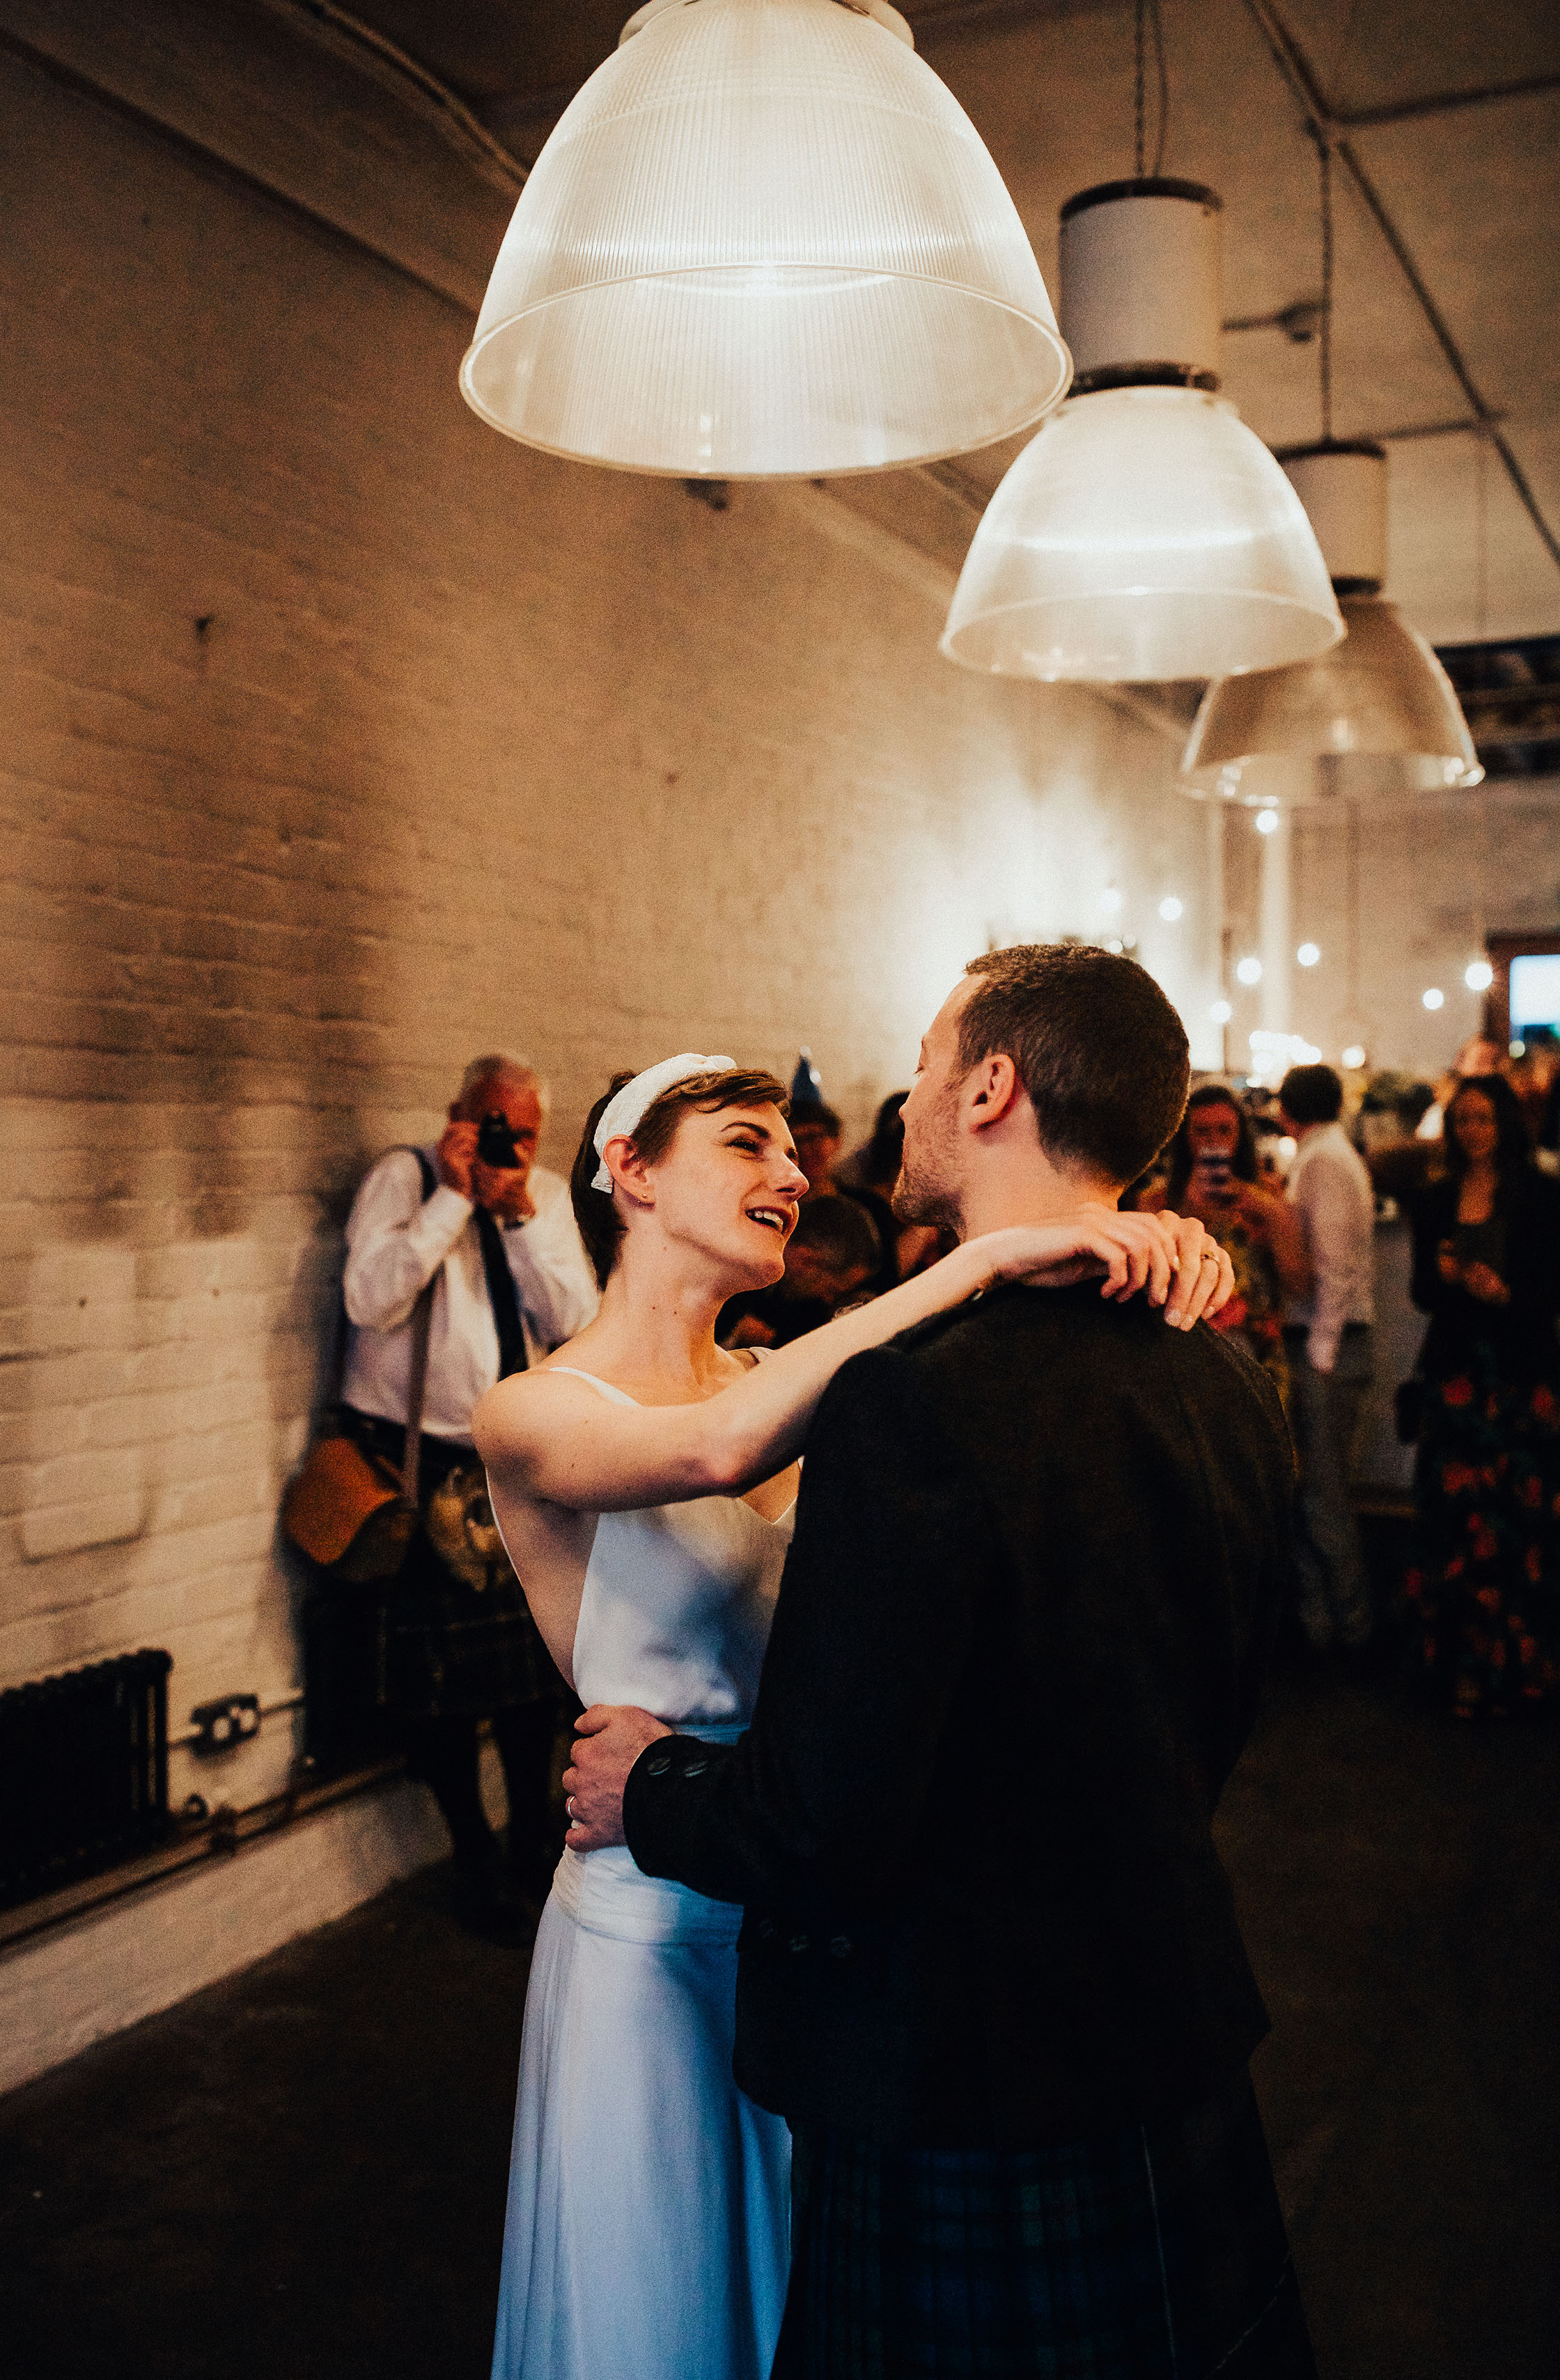 TIMBERYARD_EDINBURGH_WEDDING_PJ_PHILLIPS_PHOTOGRAPHY_199.jpg